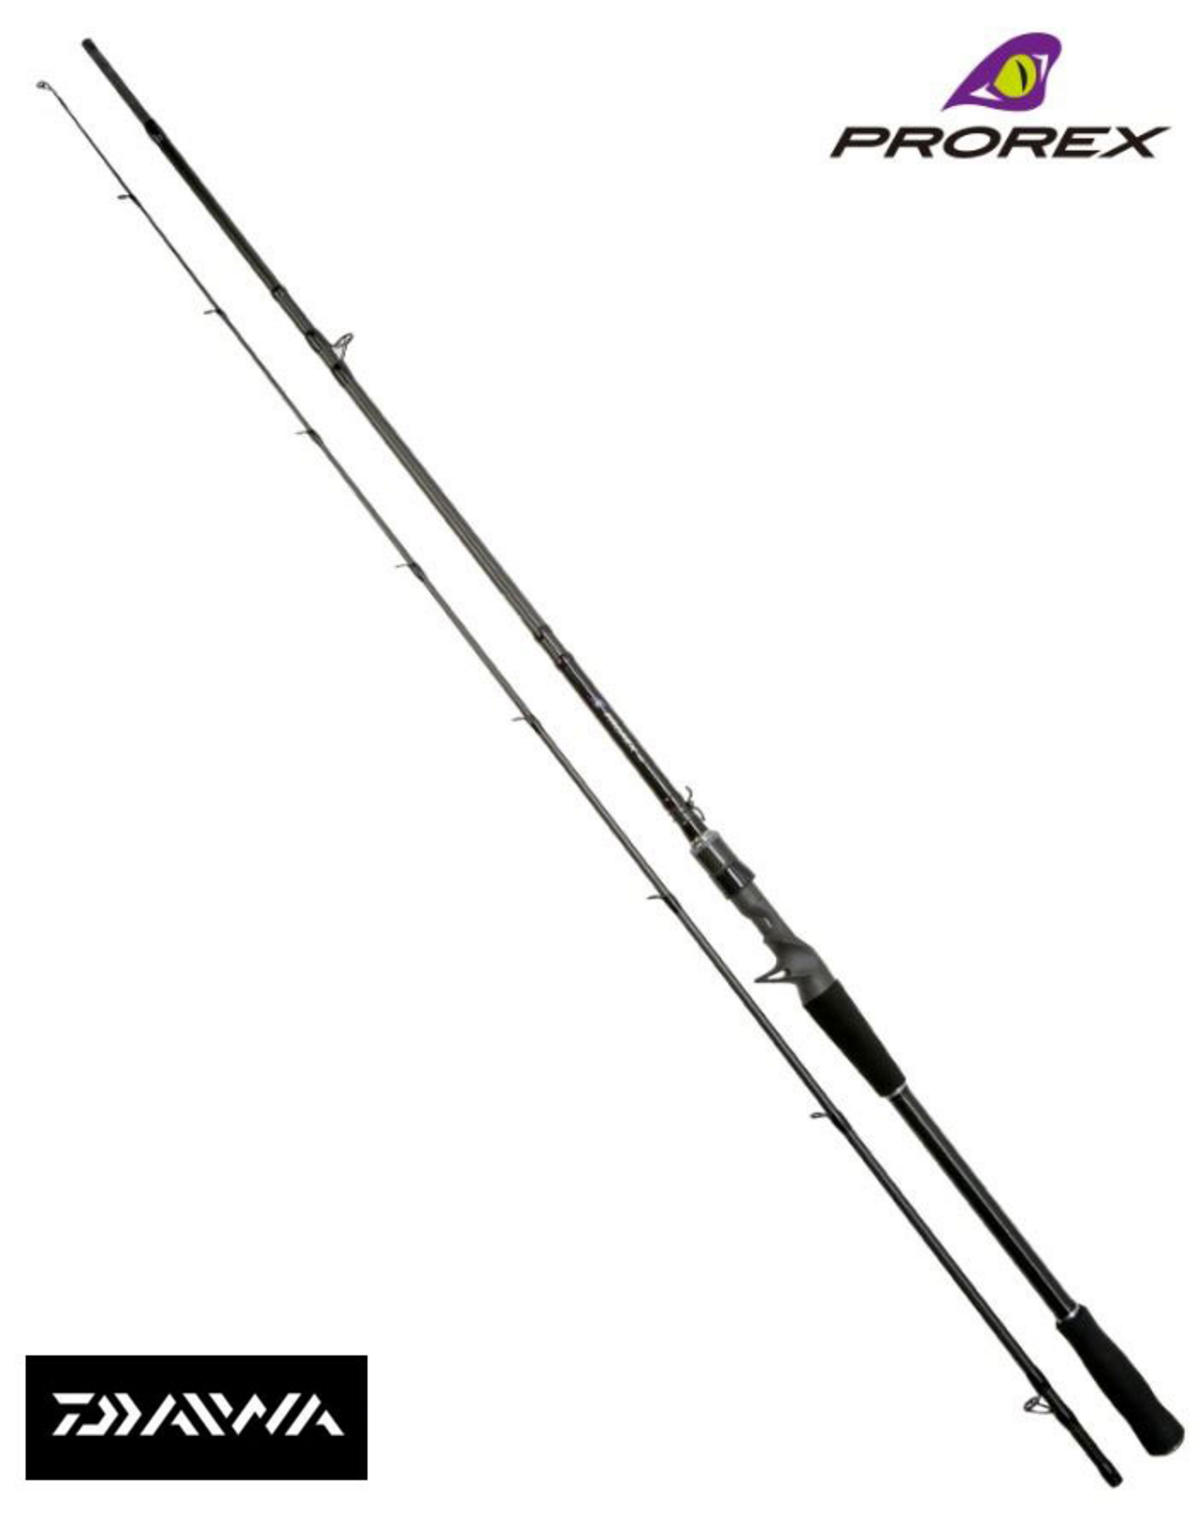 Ex Display Daiwa Prorex AGS Baitcast Spinning Rod Pike/Predator PXAGS802HXHFD-BS